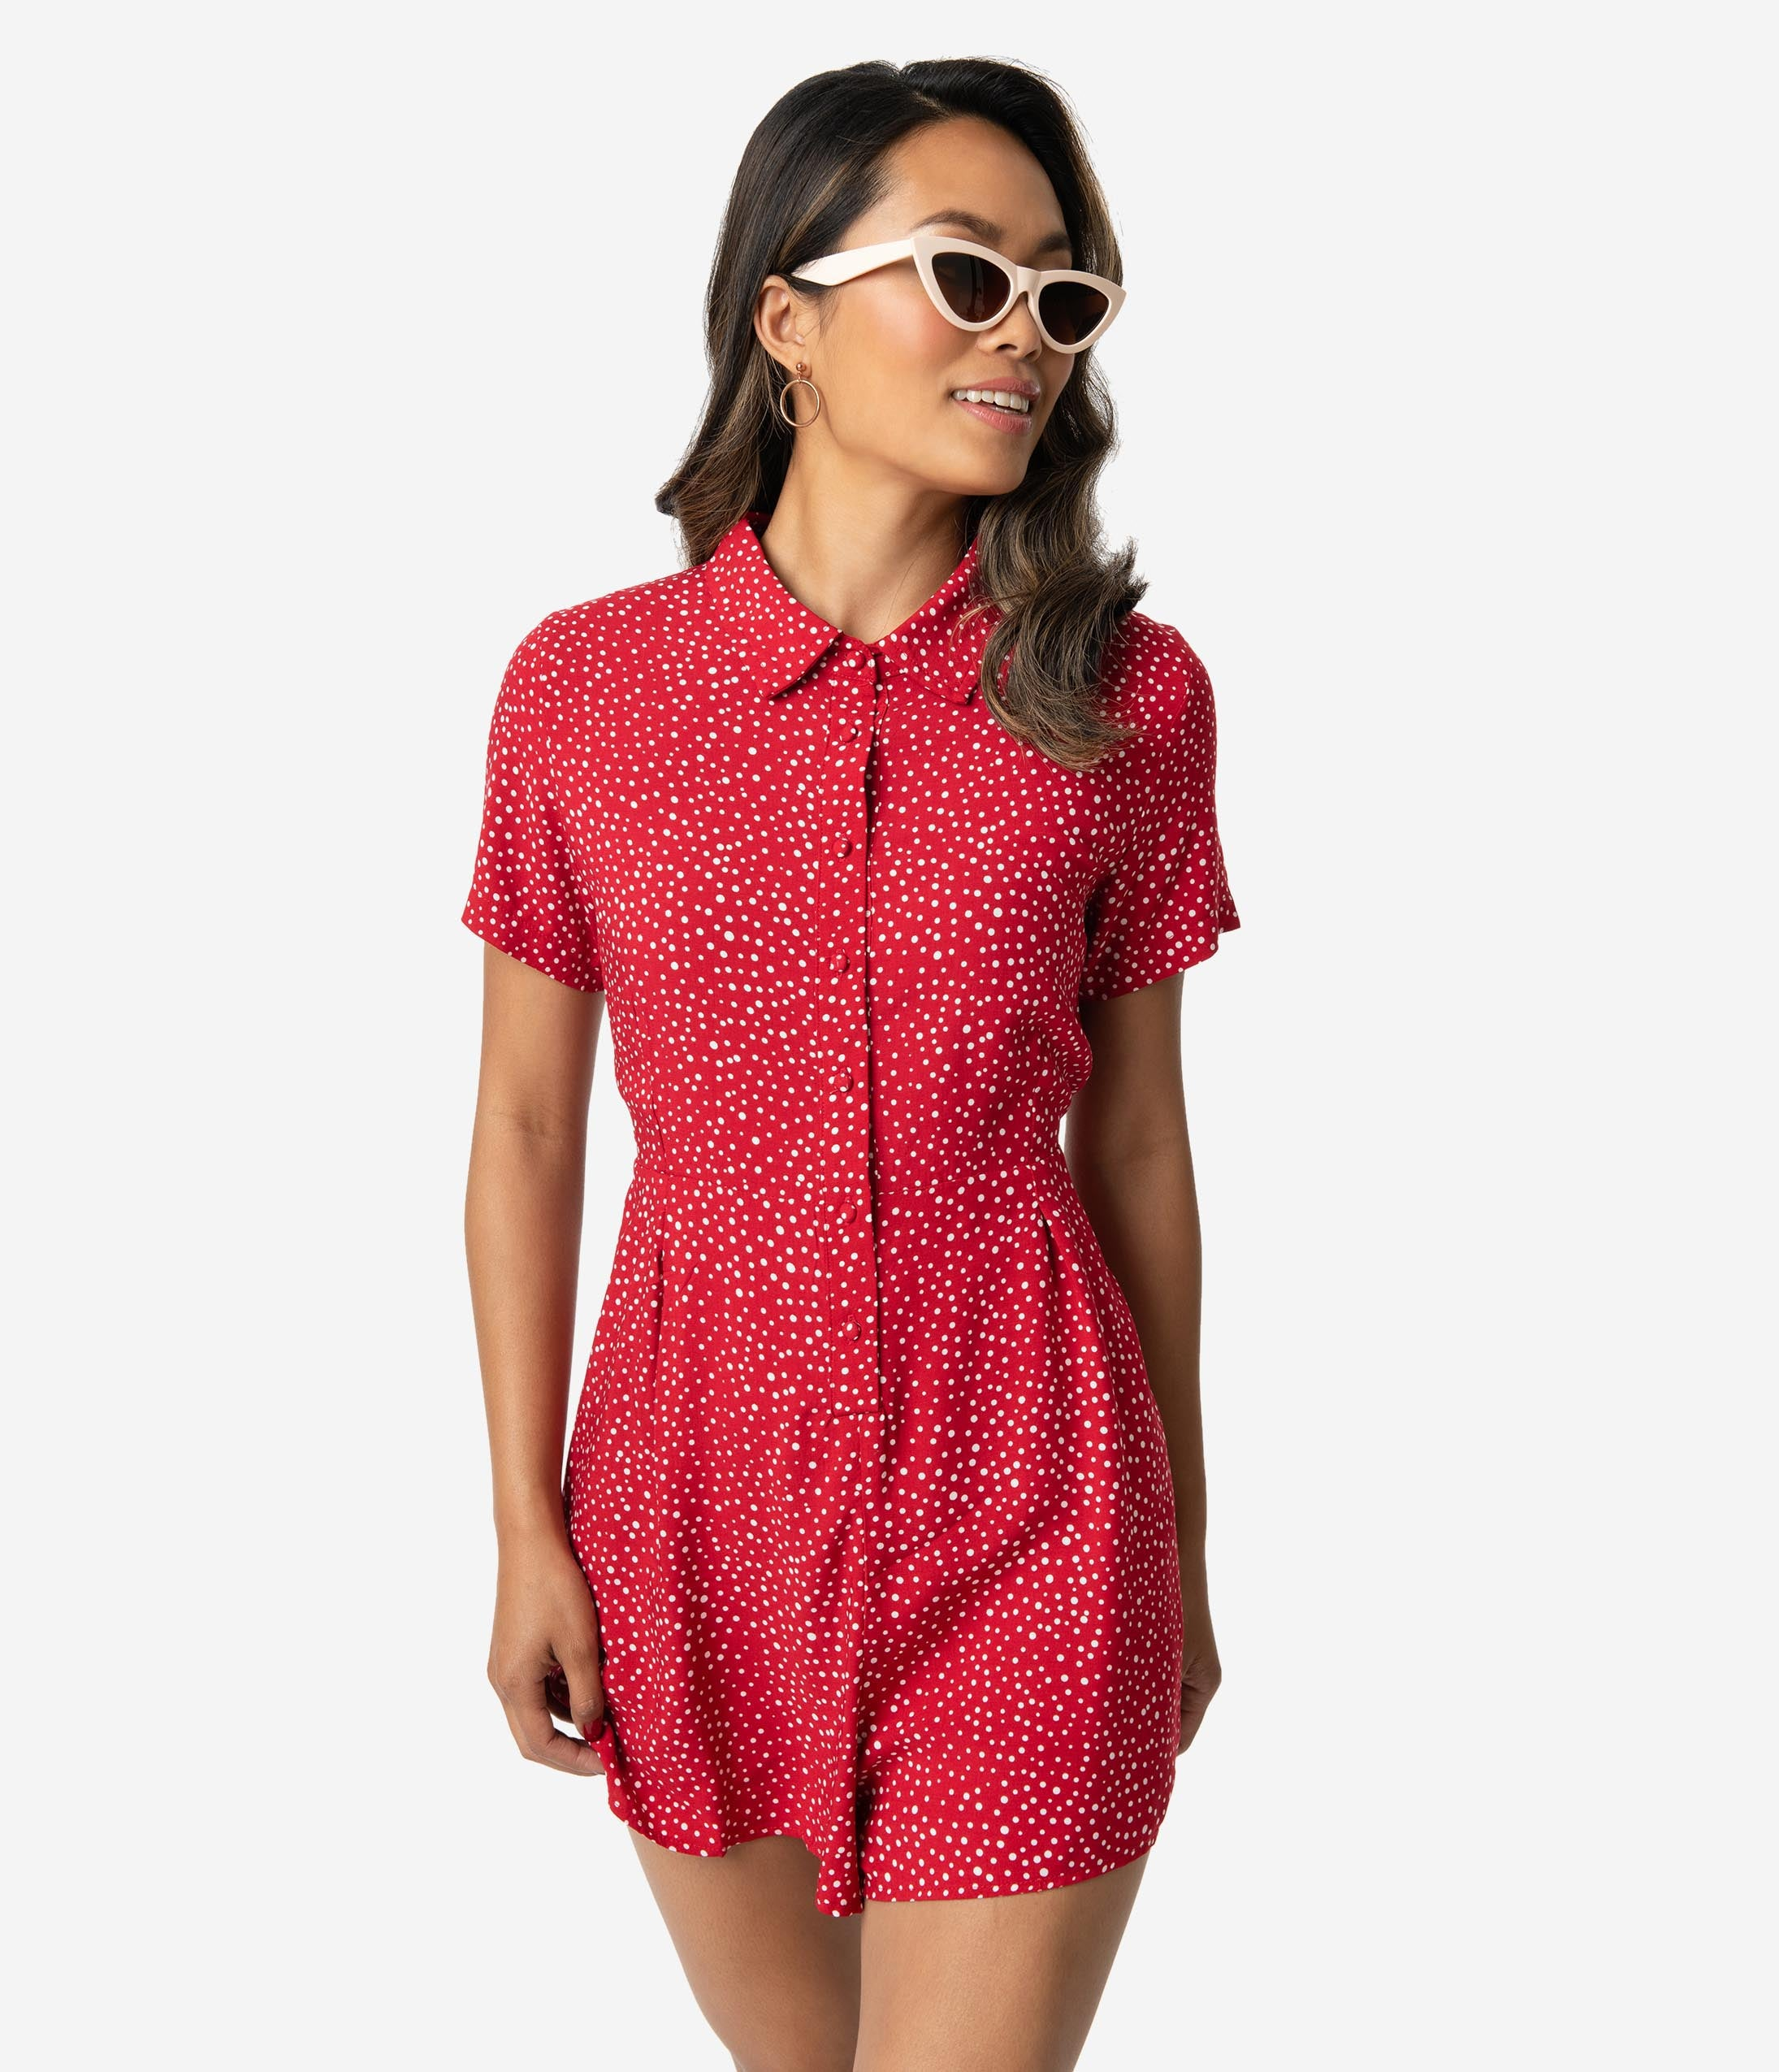 Vintage Rompers, Playsuits | Retro, Pin Up, Rockabilly Playsuits 1950S Style Red  White Polka Dot Print Short Sleeve Romper $42.00 AT vintagedancer.com